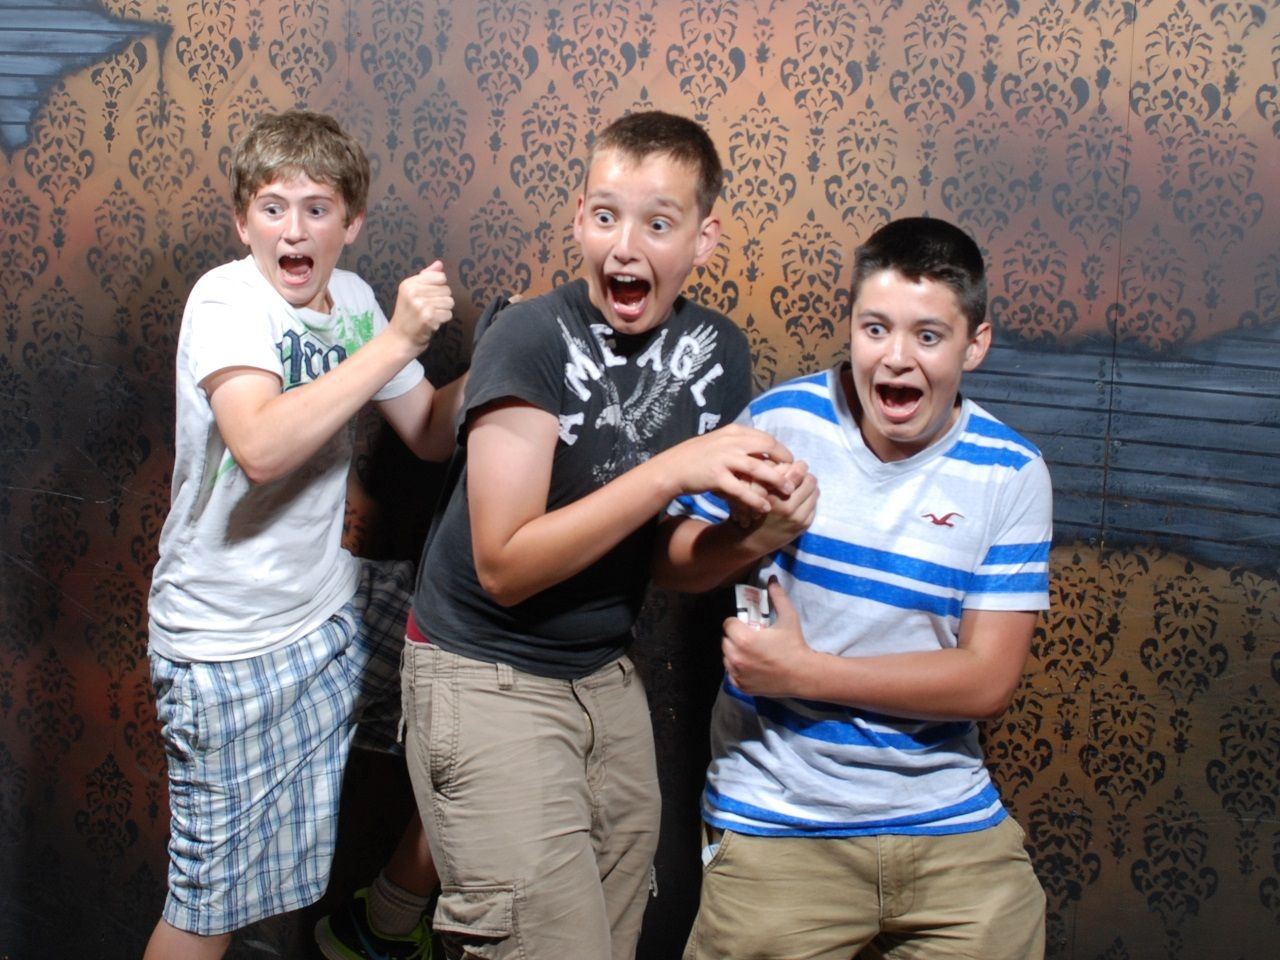 50 hilariously ridiculous haunted house reactions - The Top 10 Fear Pics From Nightmares Fear Factory In Niagara Falls Click The Pic Scariest Haunted Househaunted